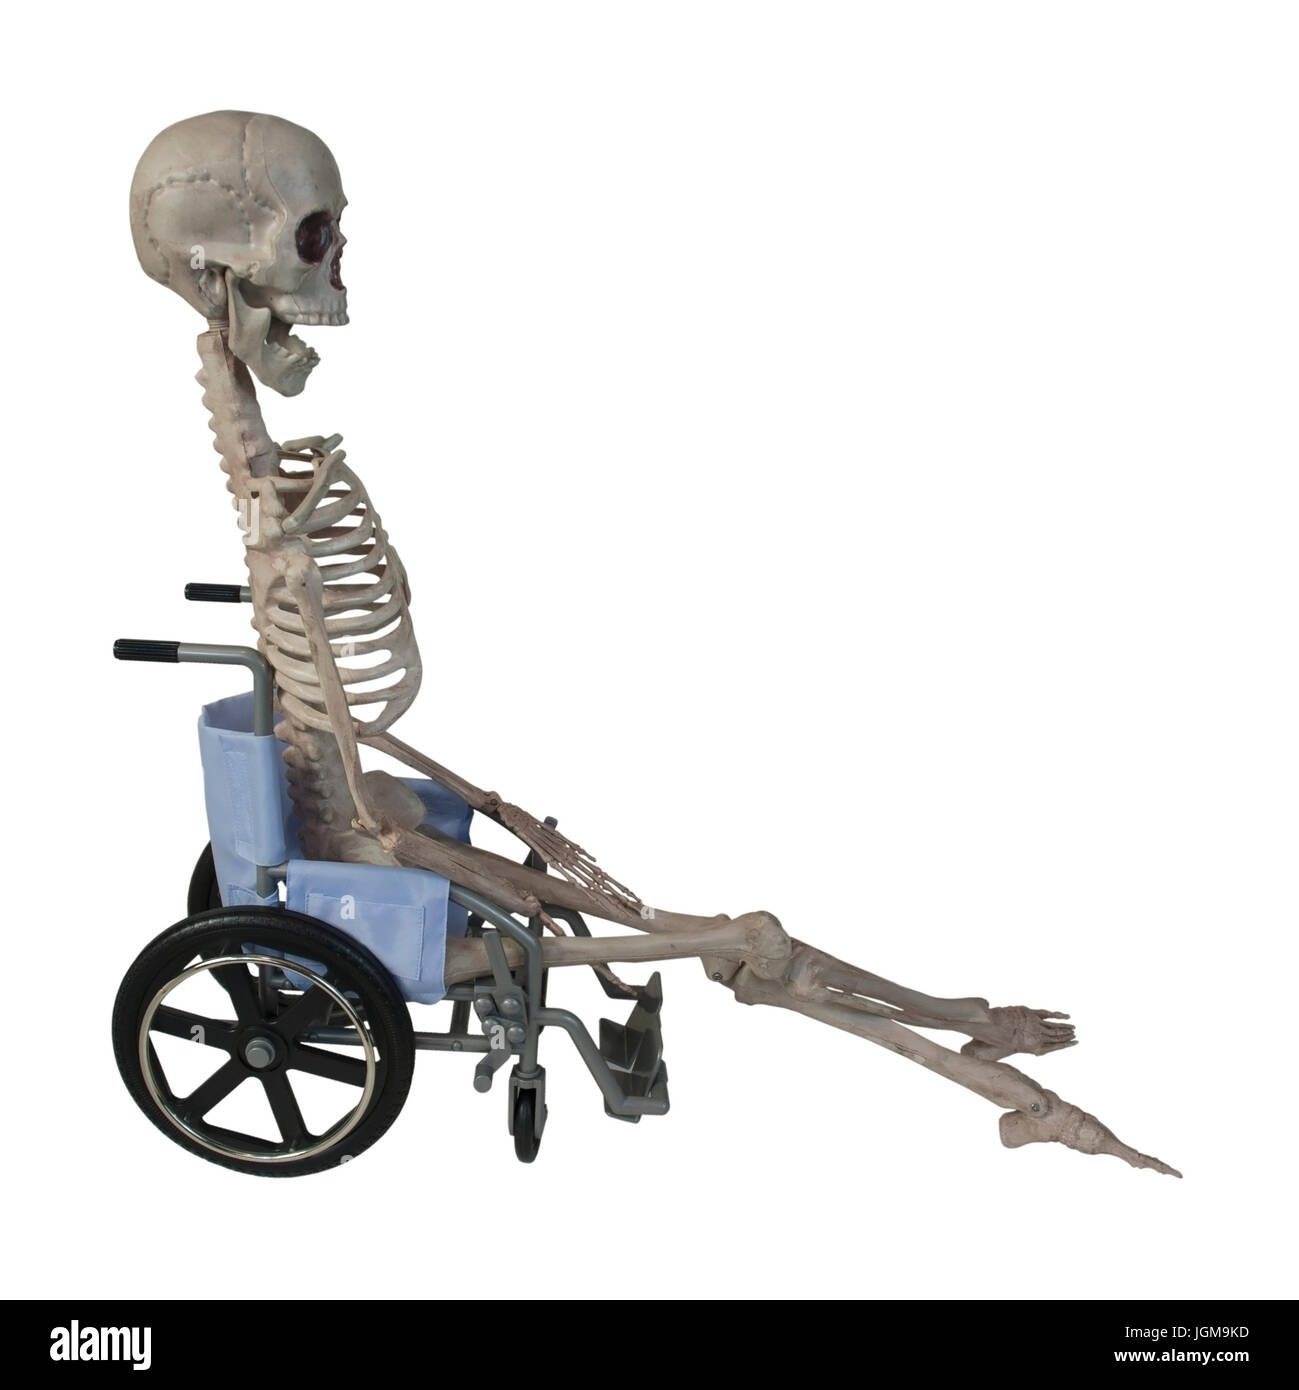 The skeleton in a Wheelchair - path included - Stock Image